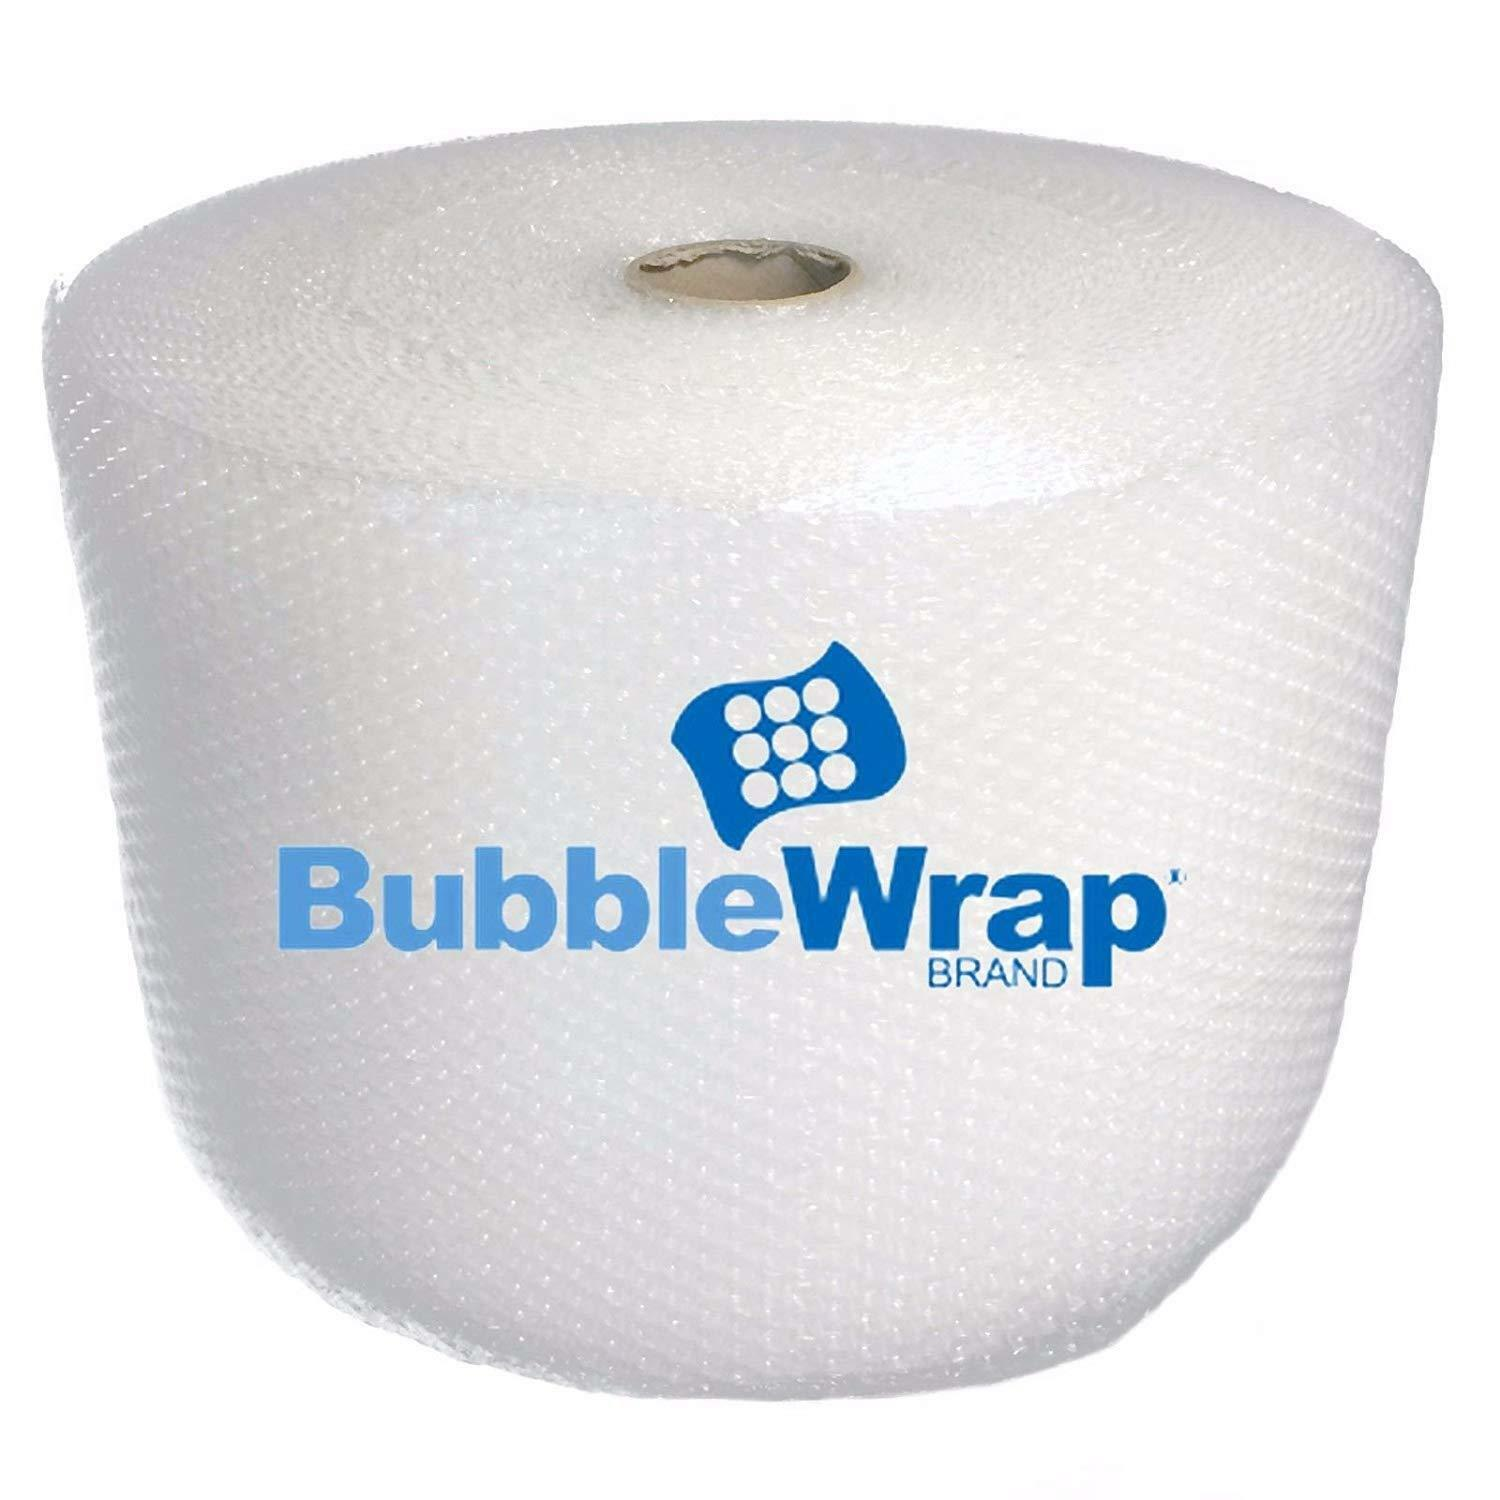 "BUBBLE WRAP® 3/16""- 175 ft x 12"" perforated every 12"" cardboard Core included"